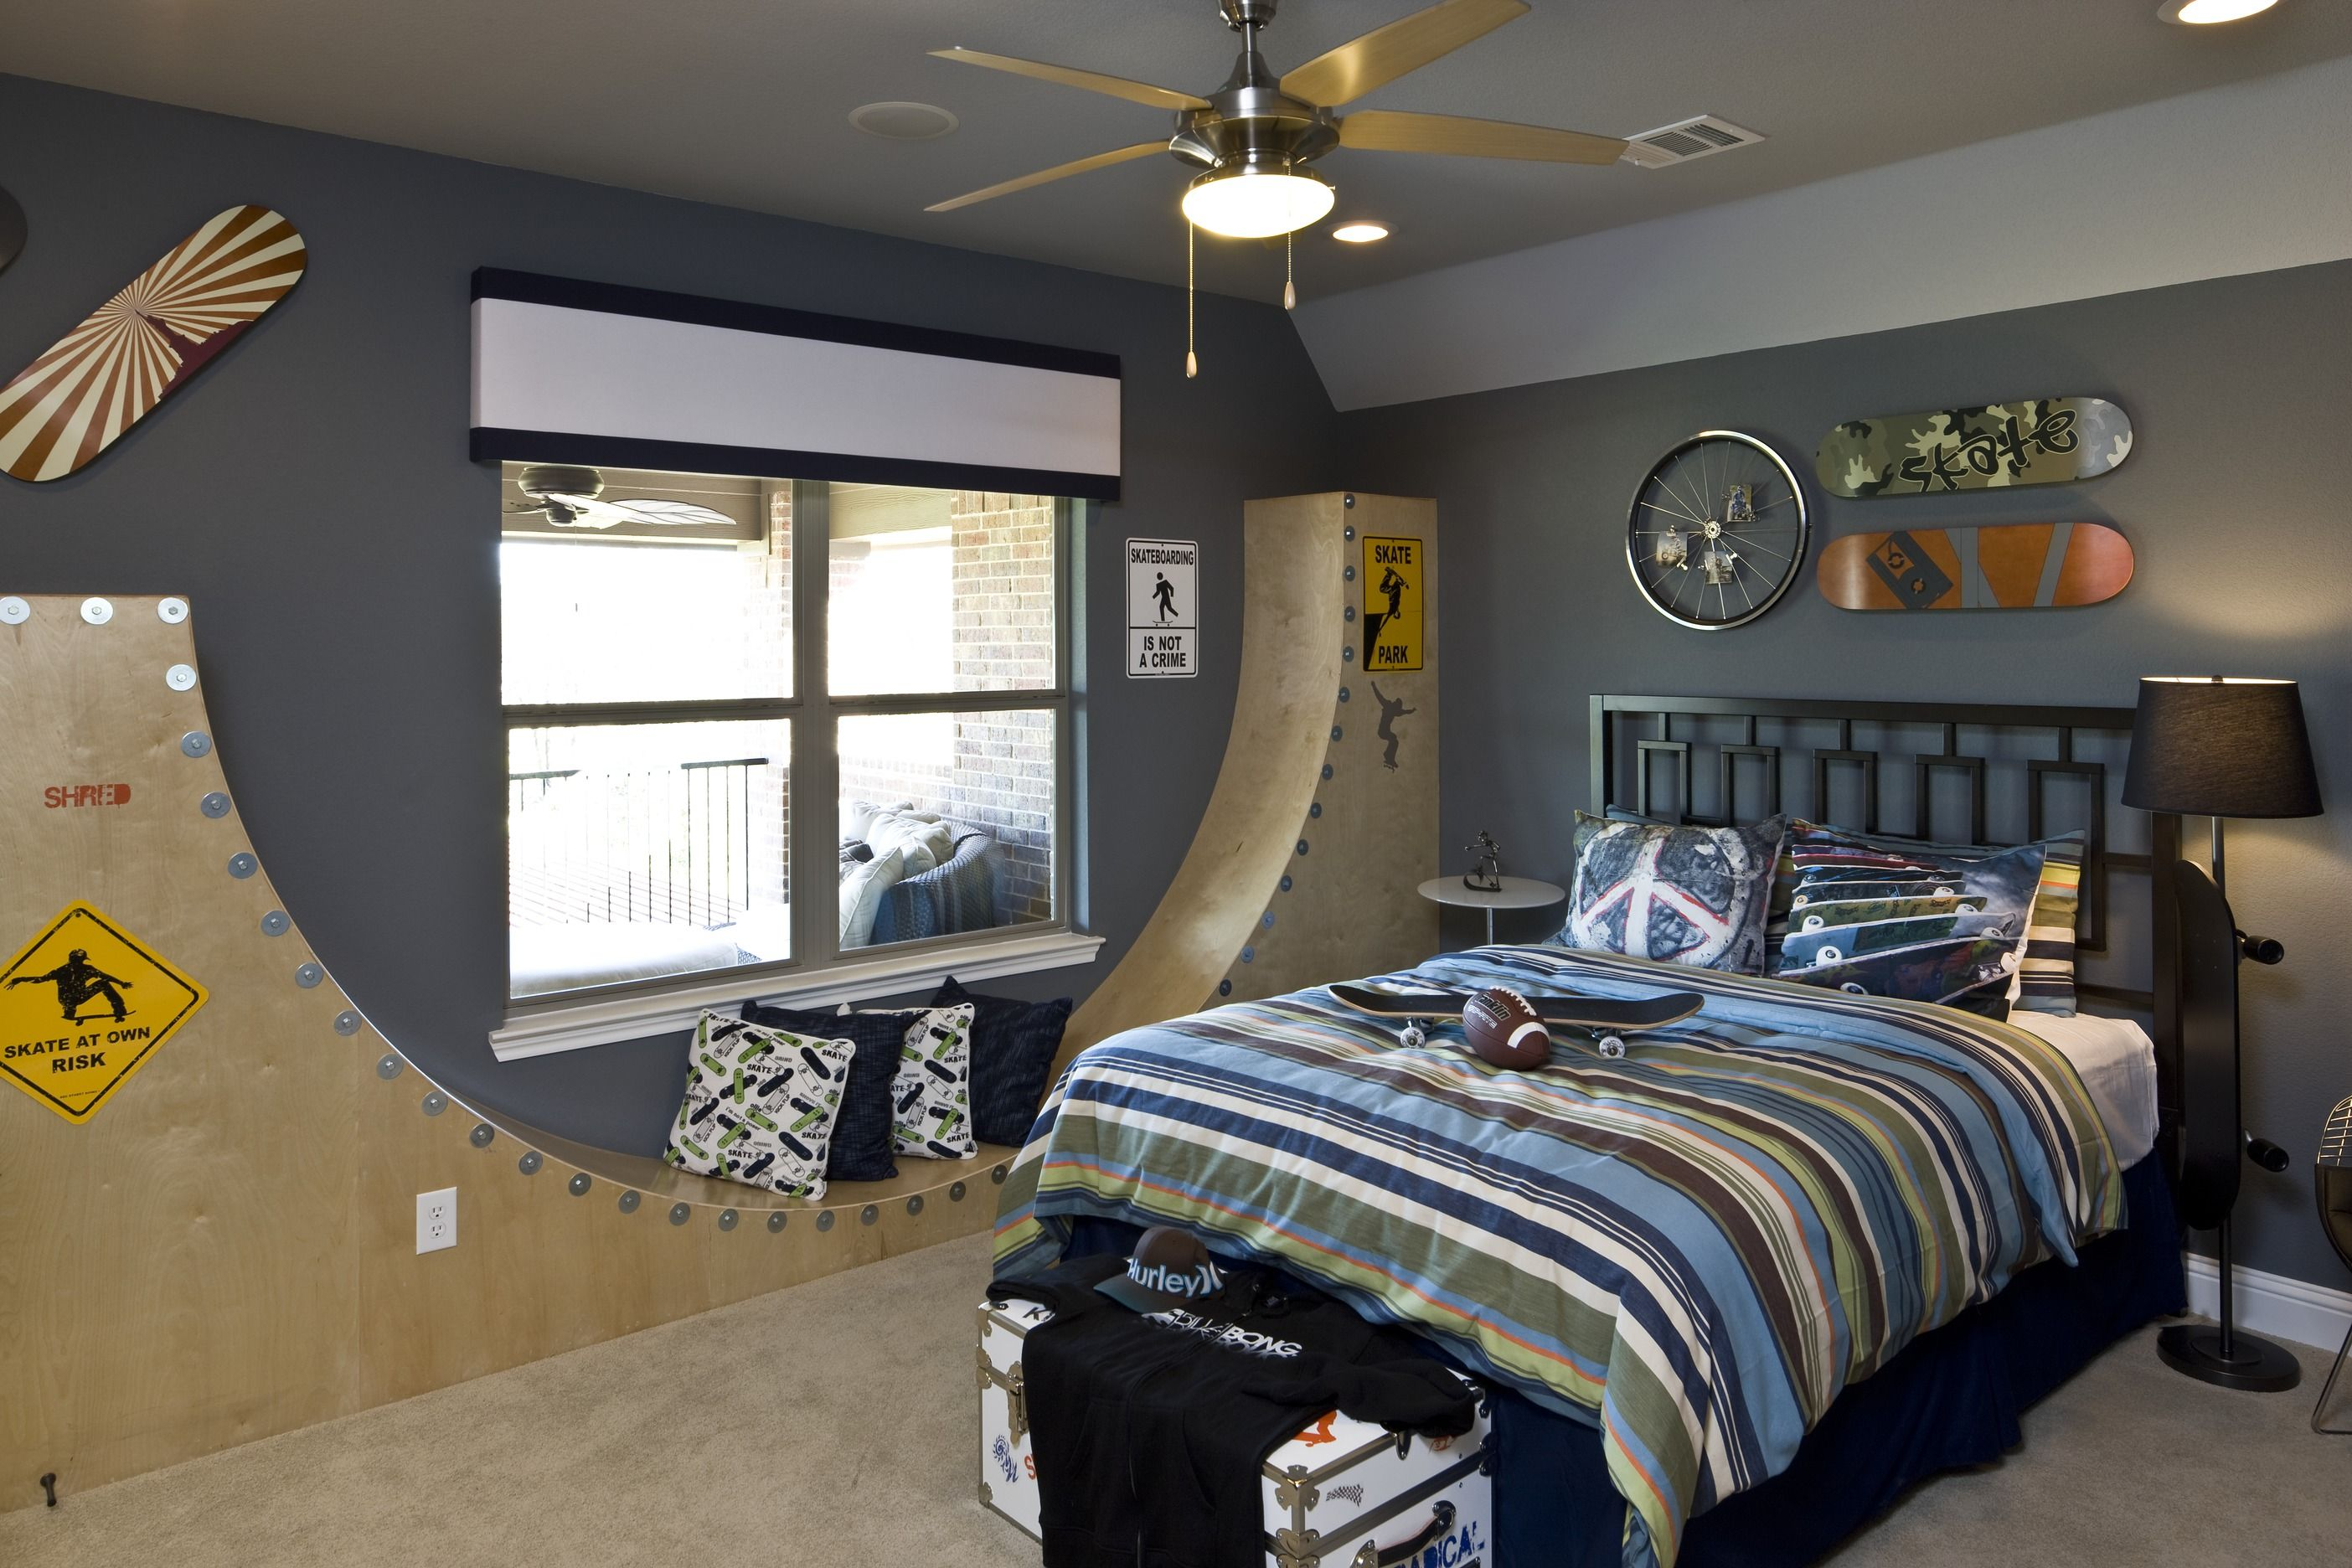 Head To The Skate Park In This Skateboard Themed Room